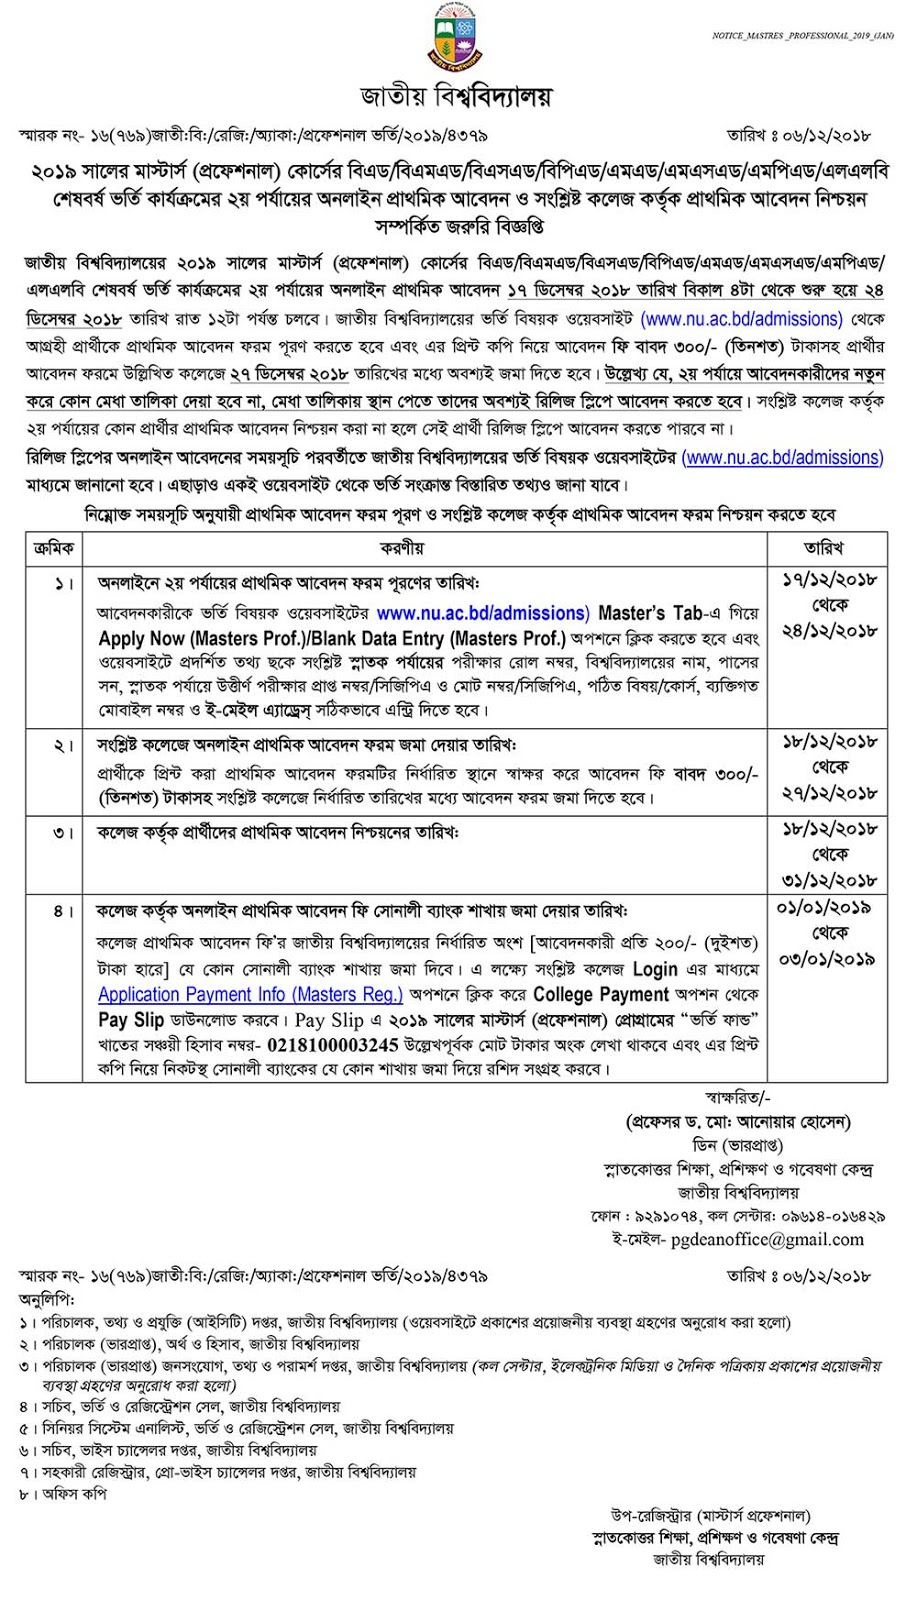 NU B Ed and LLB Admission Notice